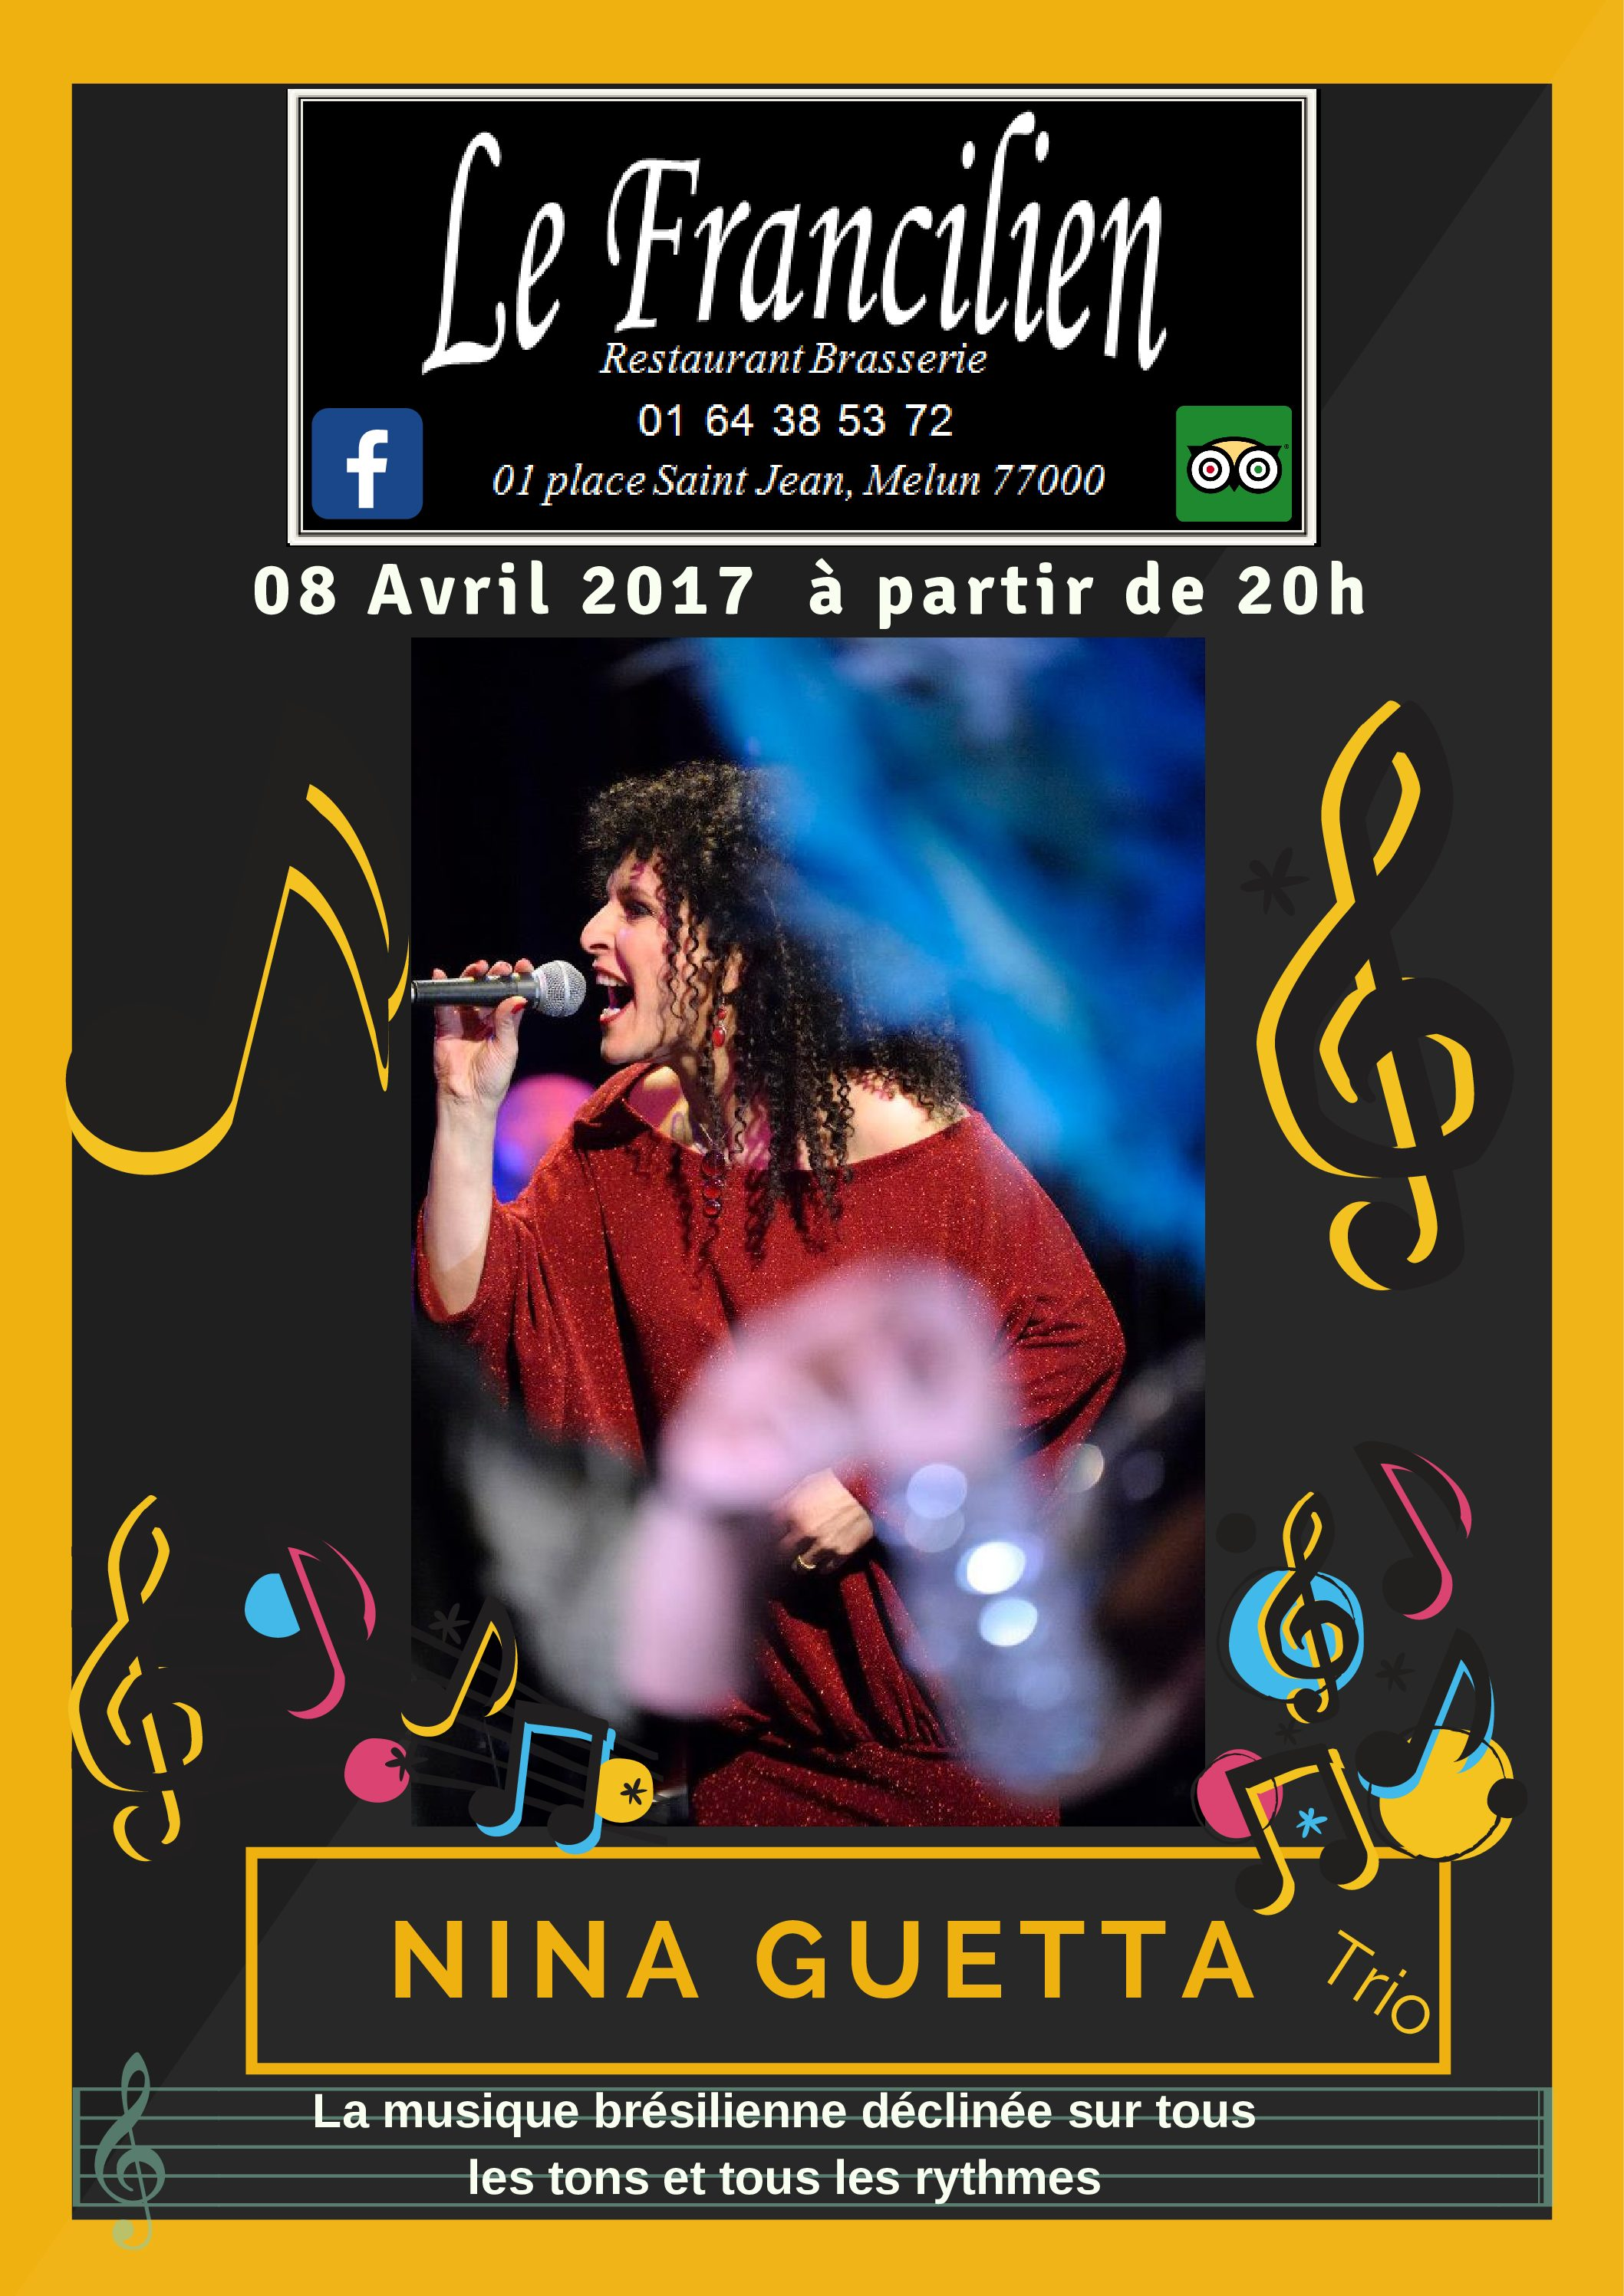 Concert at the Francilien in Melun saturday the 8.04.17. Brazilian Song